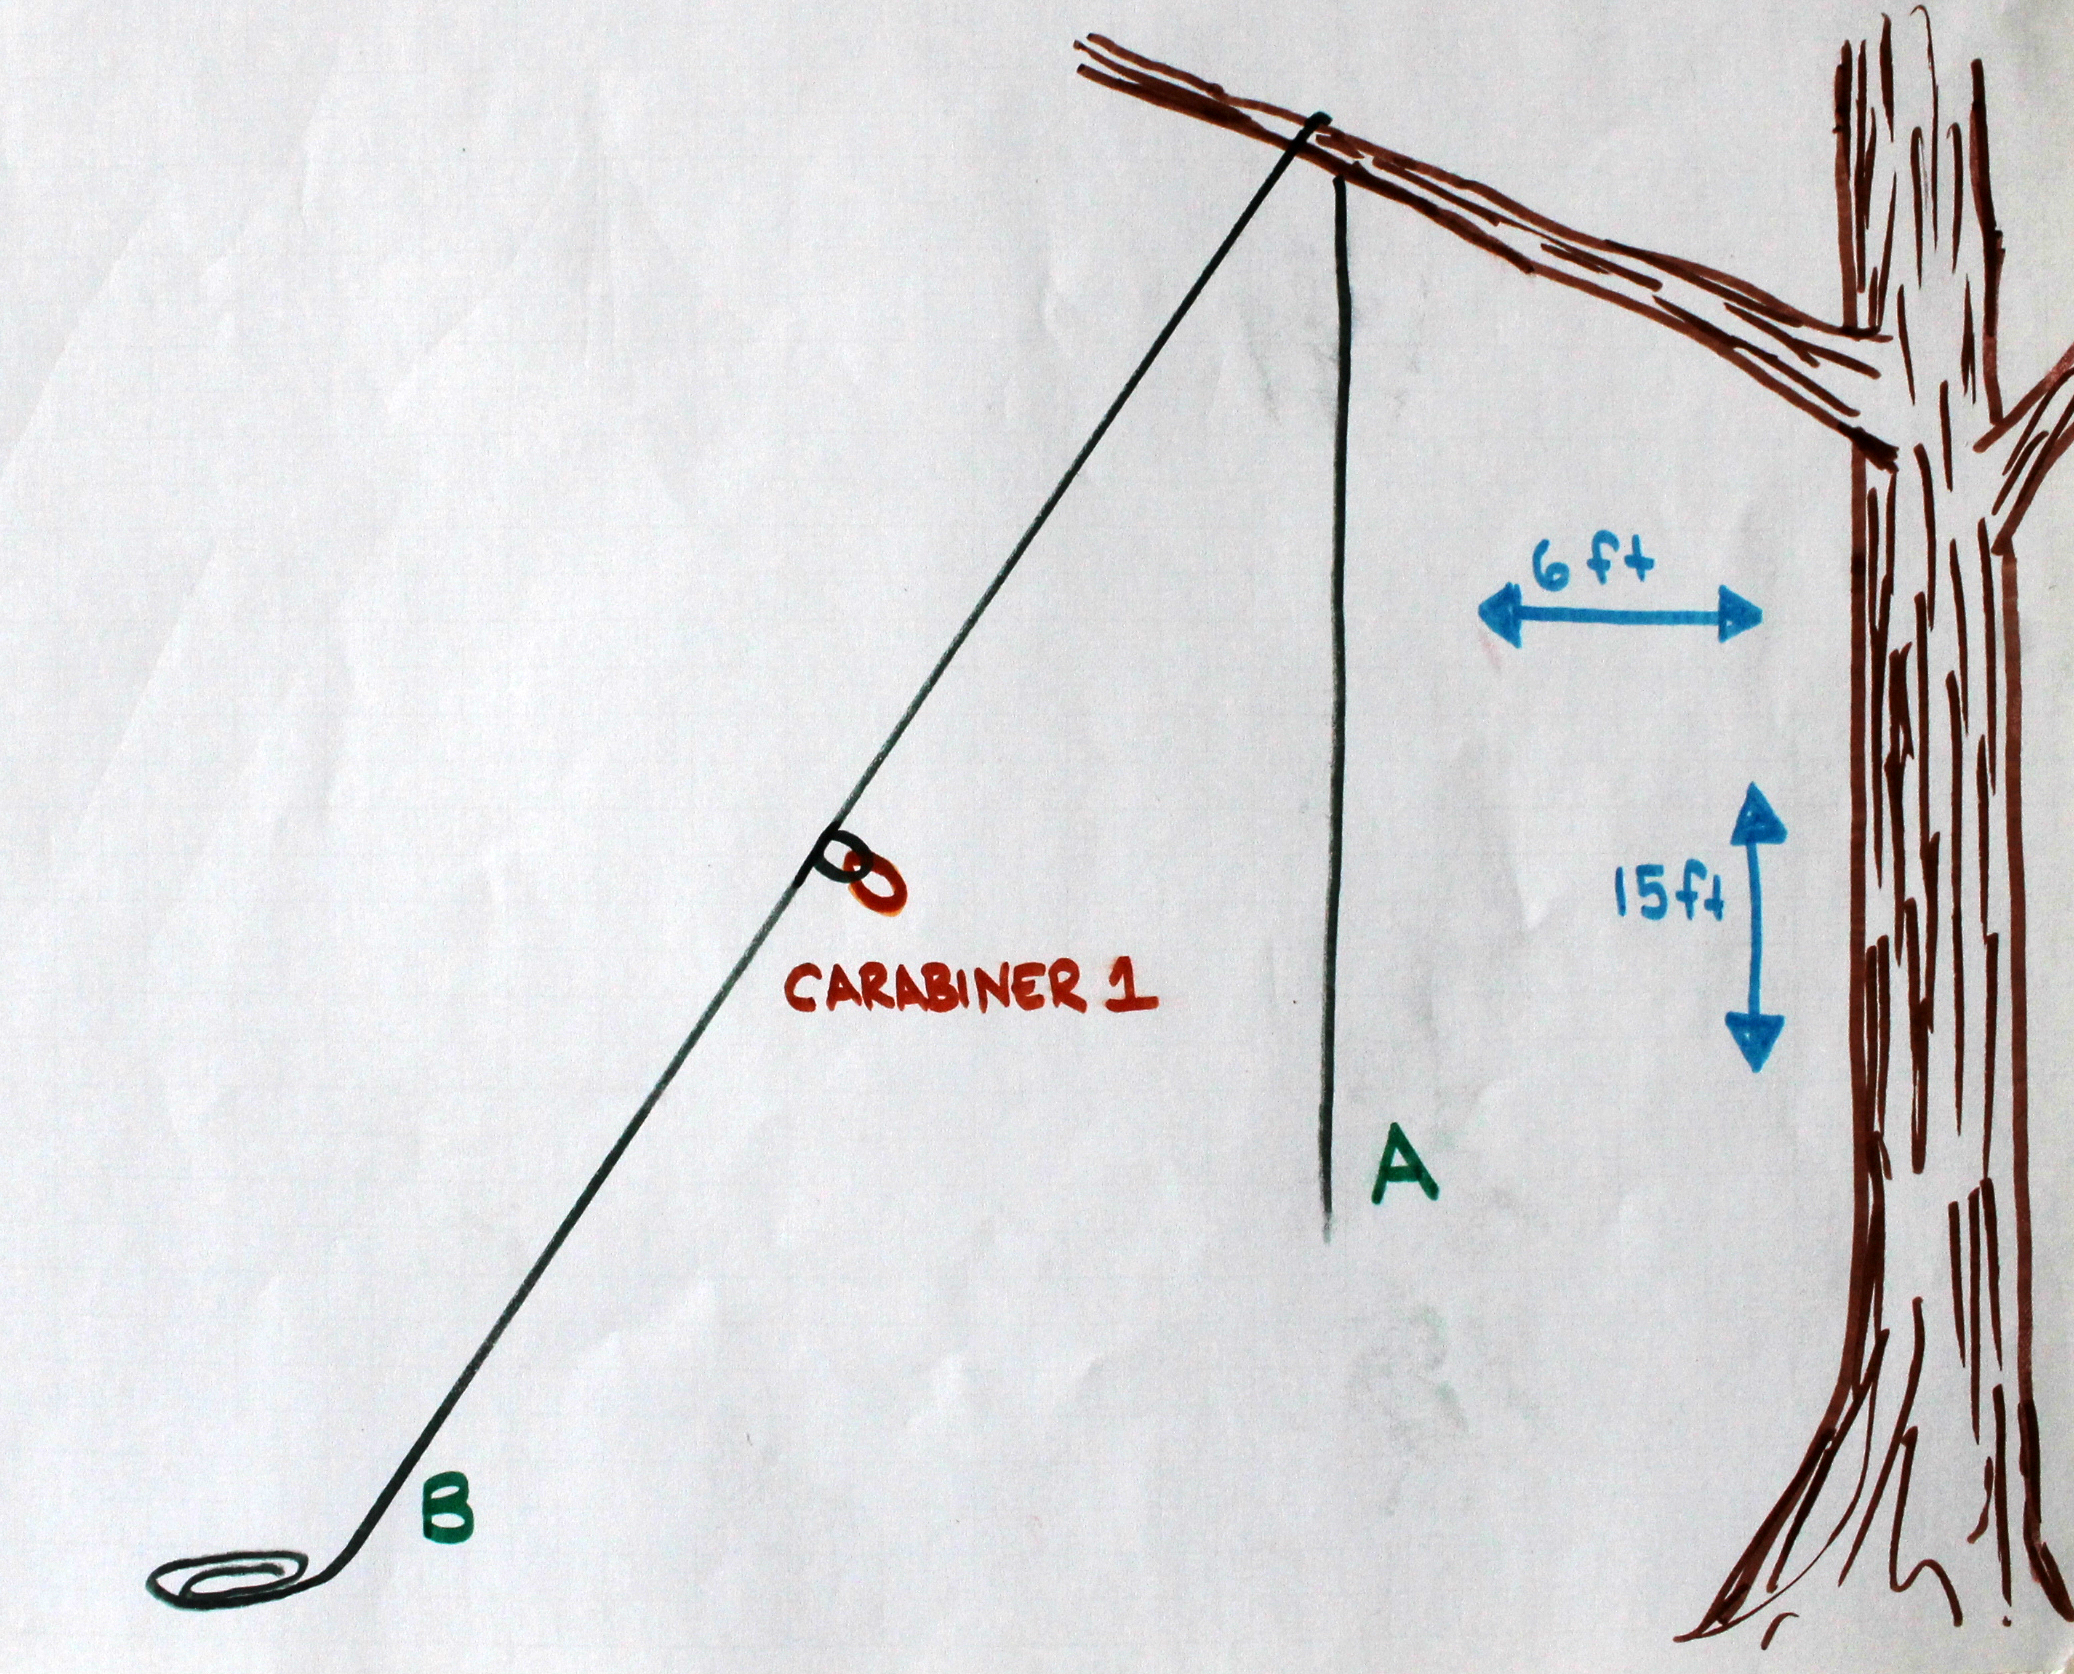 5 Ways To Hang A Bear Bag Mom Goes Camping 4 1 Haul System Diagram Wiring Schematic Marrison